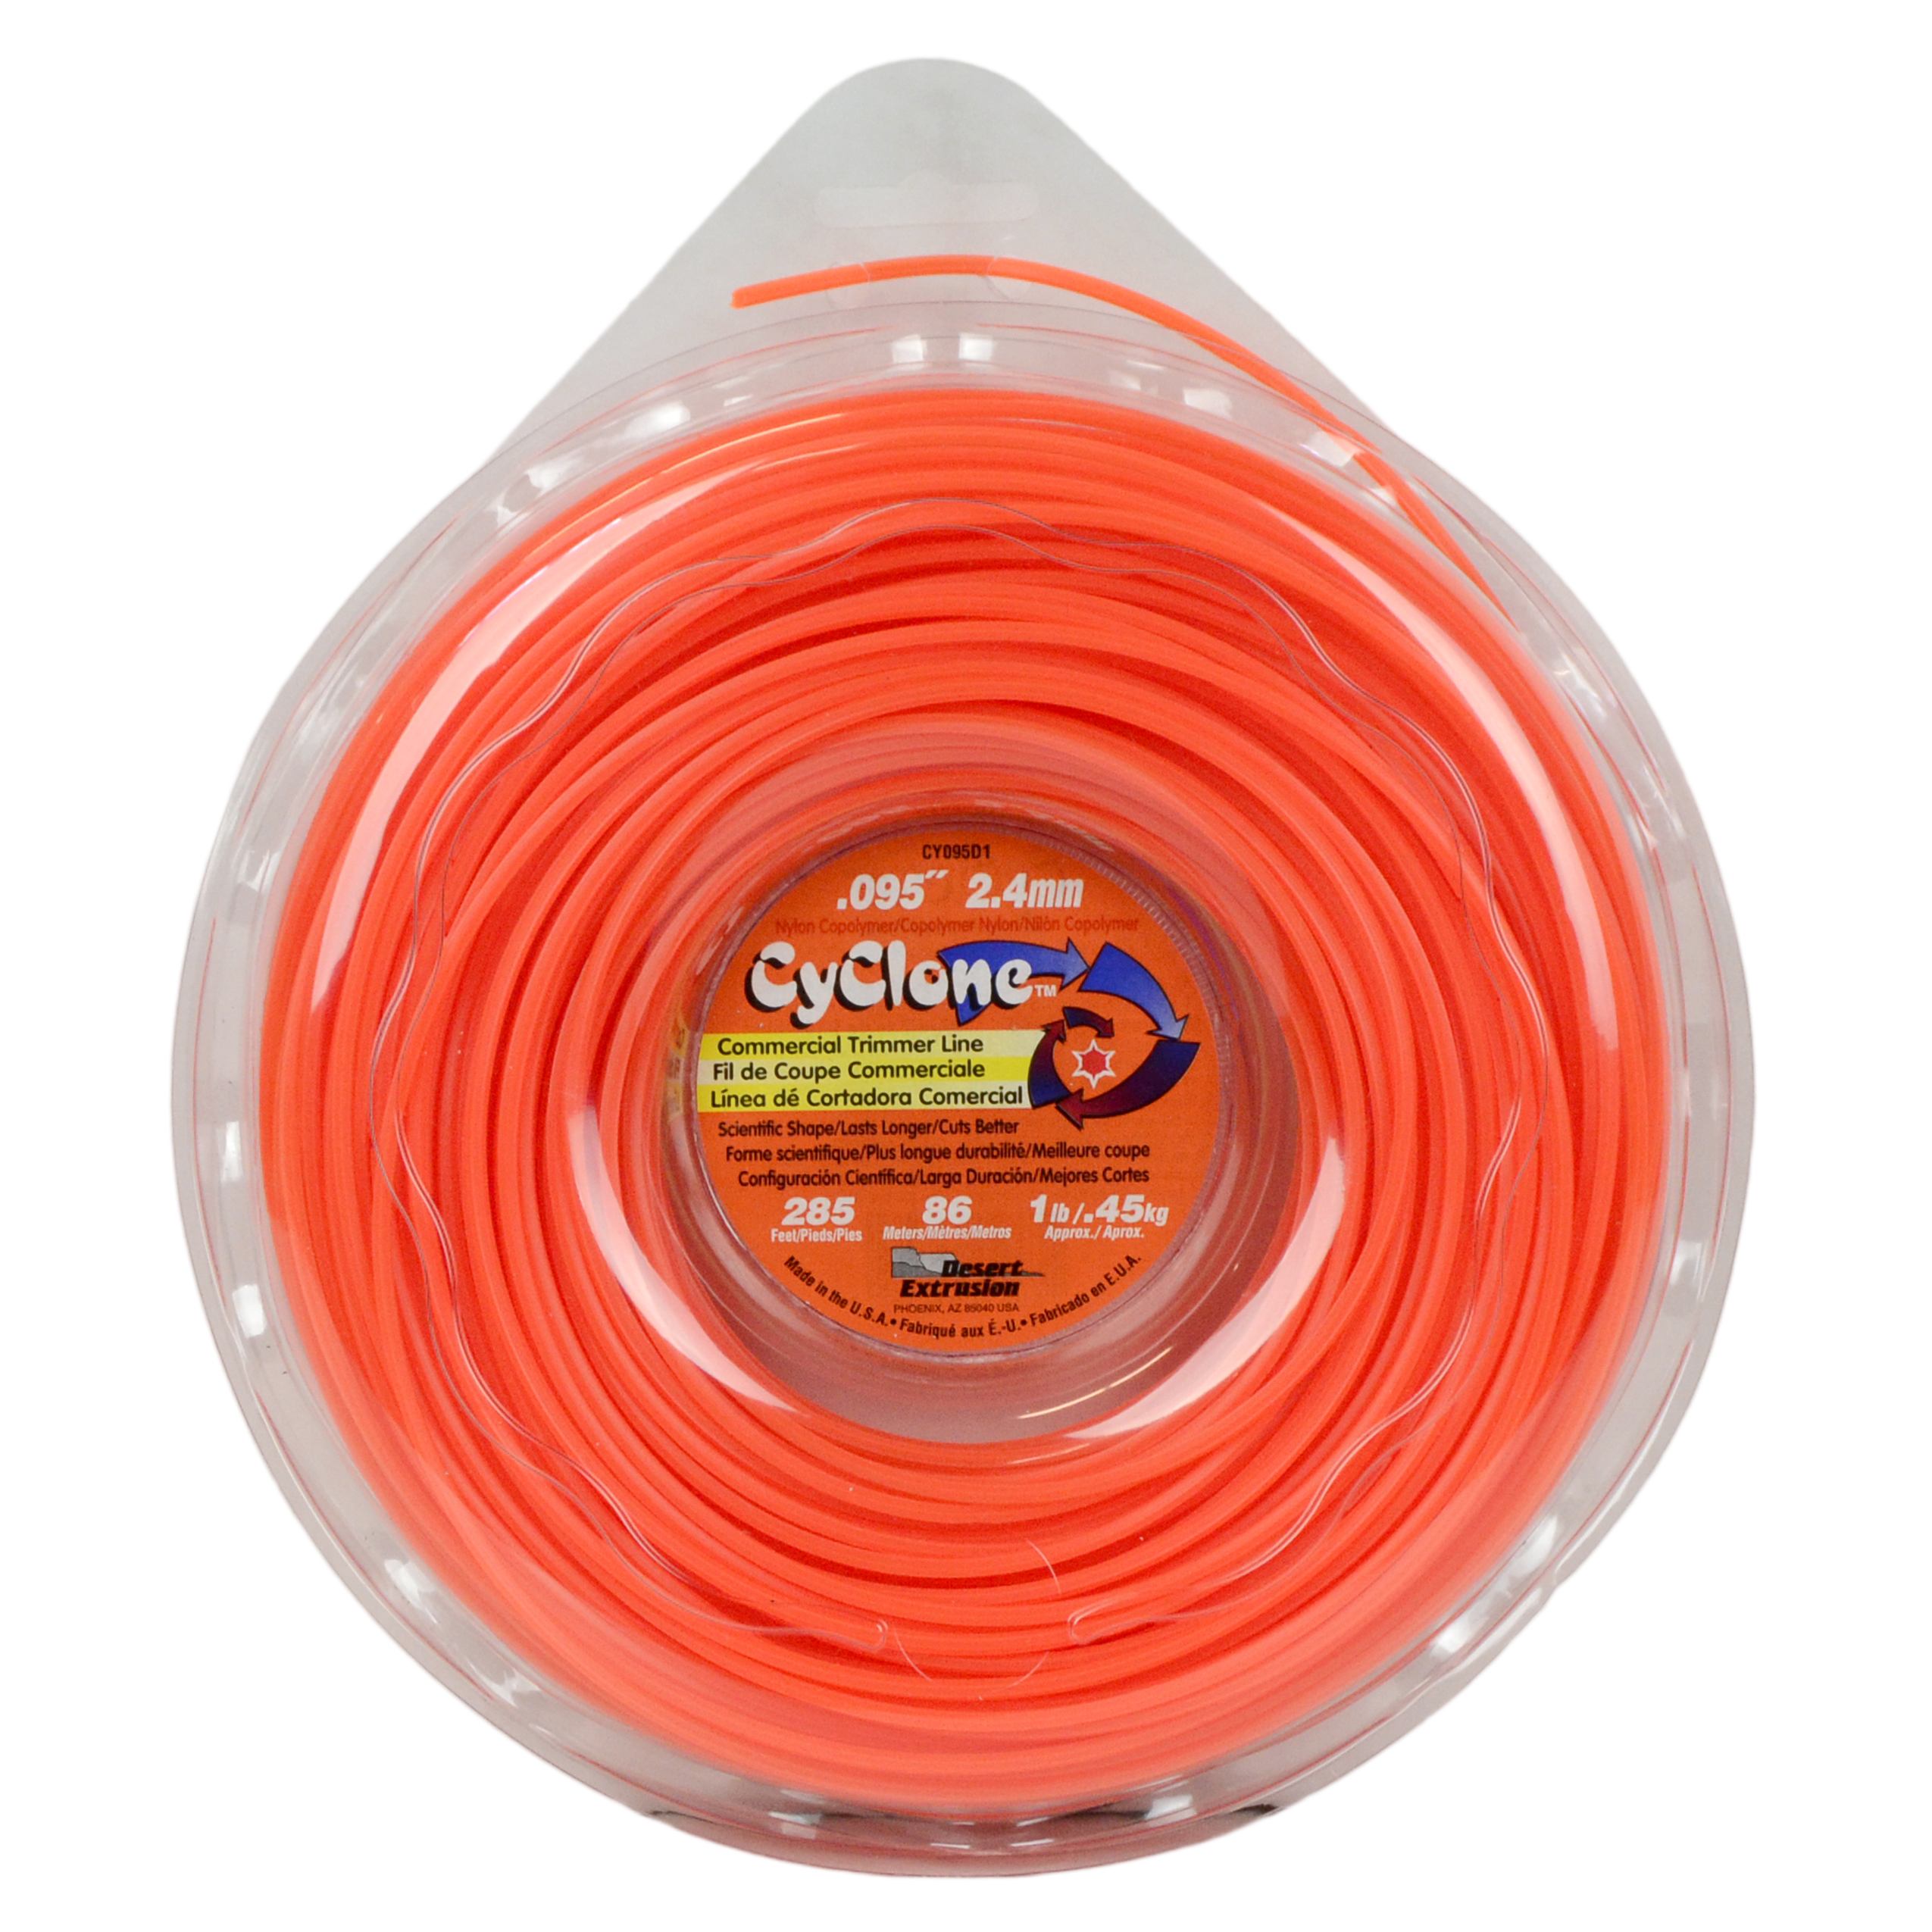 "Cyclone CY095D1 0.095"" x 285' Commercial String Trimmer Line Orange, Made in the USA"